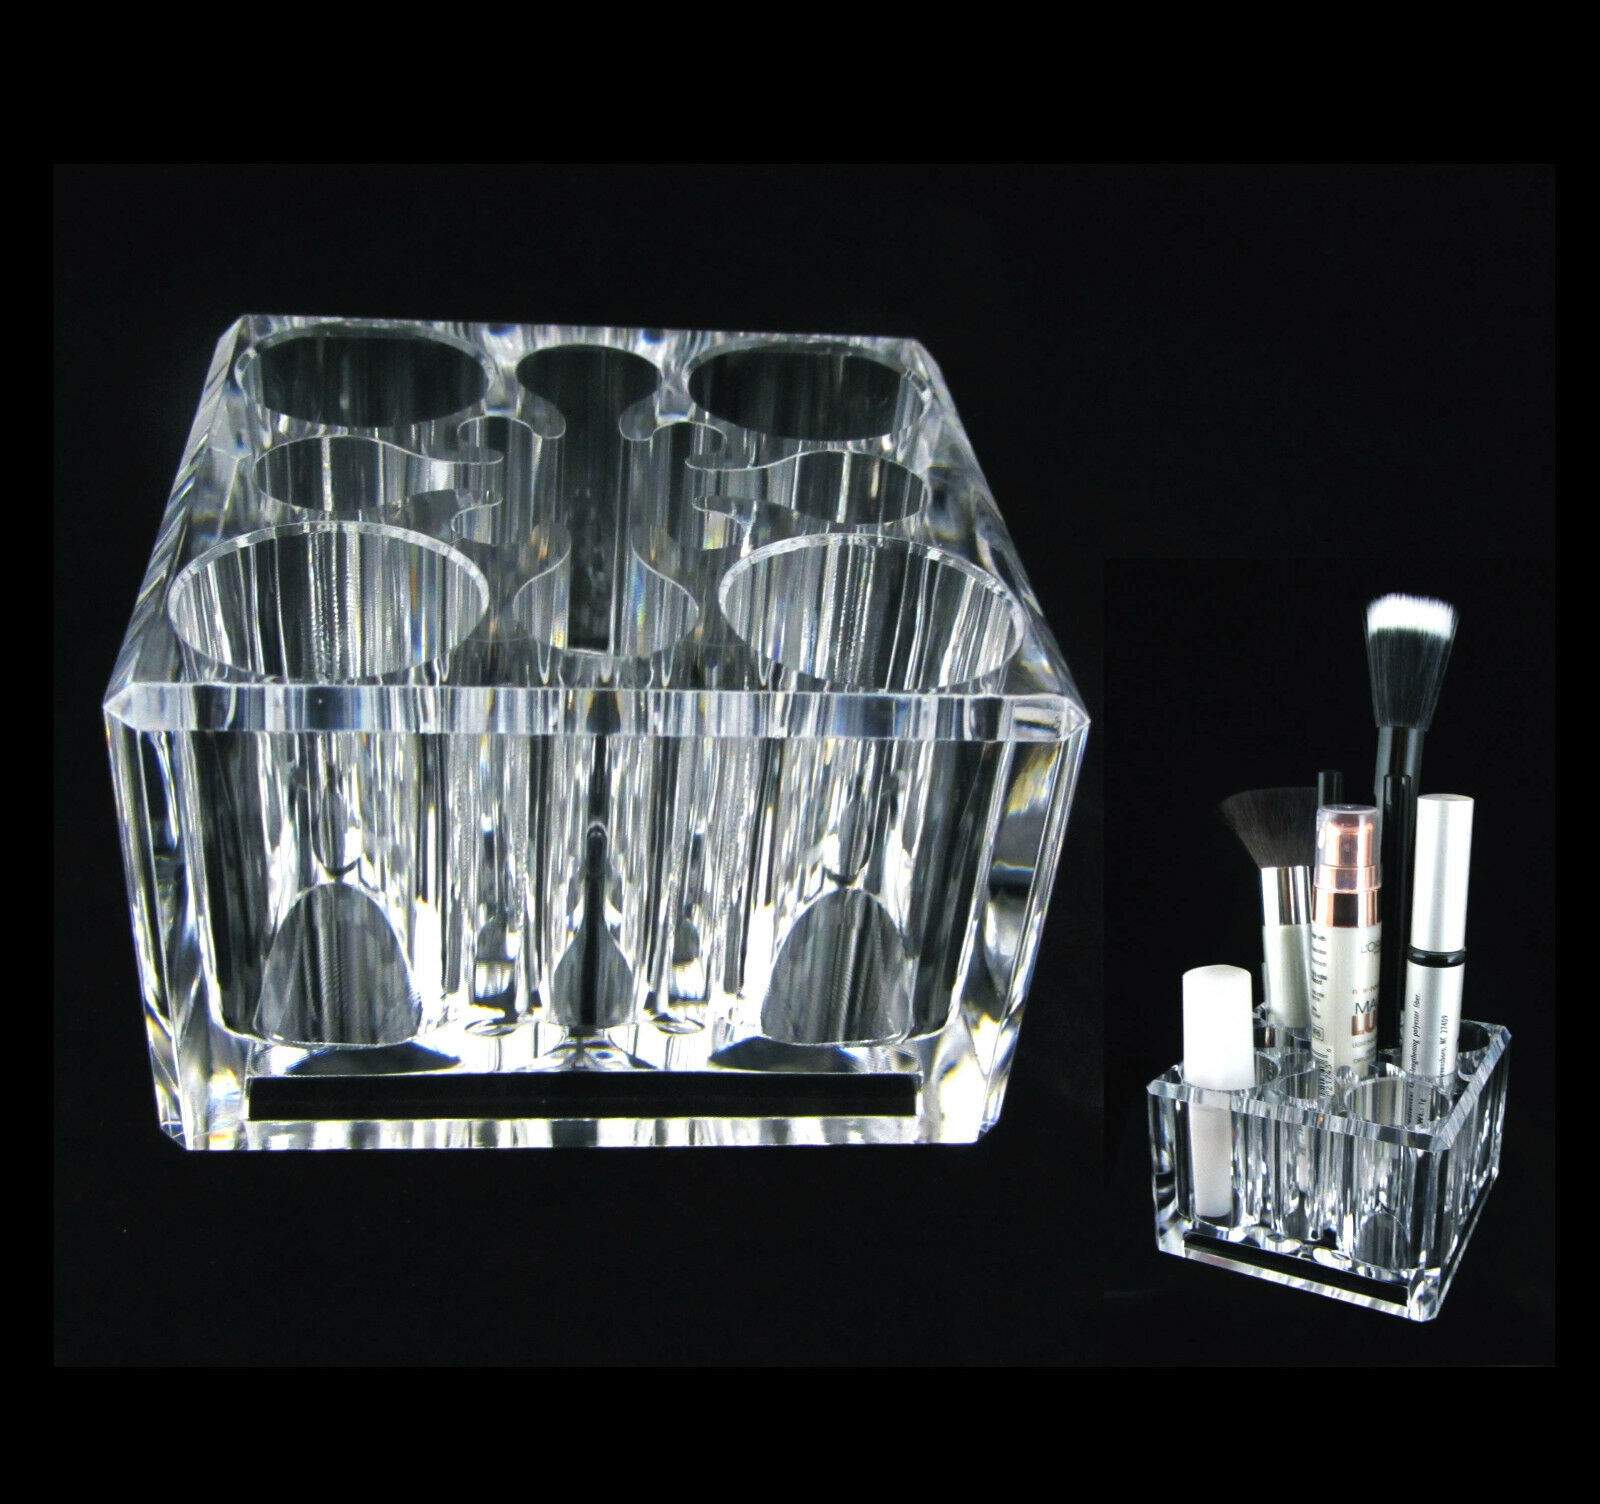 Primary image for Acrylic Square Cube Cosmetic Organizer Luxury Makeup Brush Storage Holder #5654